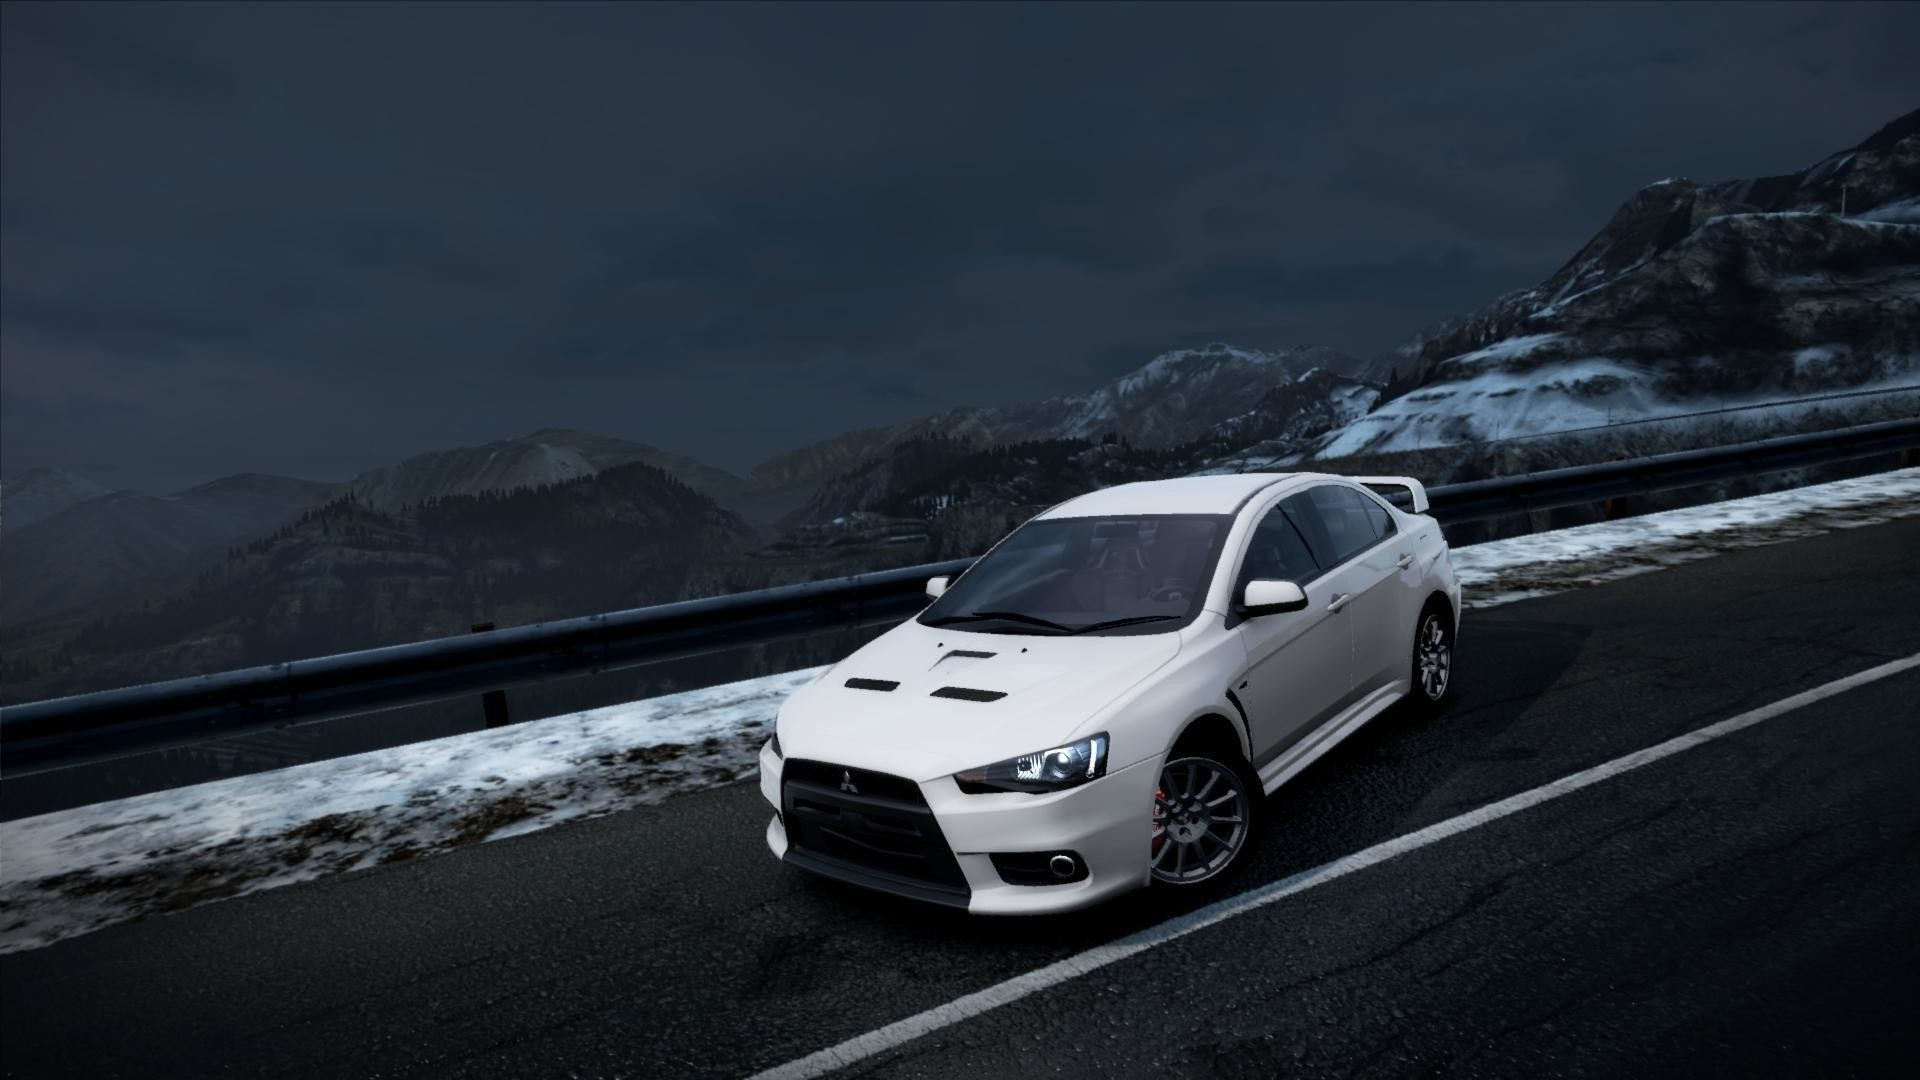 Res: 1920x1080, Mitsubishi Lancer Evolution X Wallpaper | Wallpaper Studio 10 | Tens of  thousands HD and UltraHD wallpapers for Android, Windows and Xbox